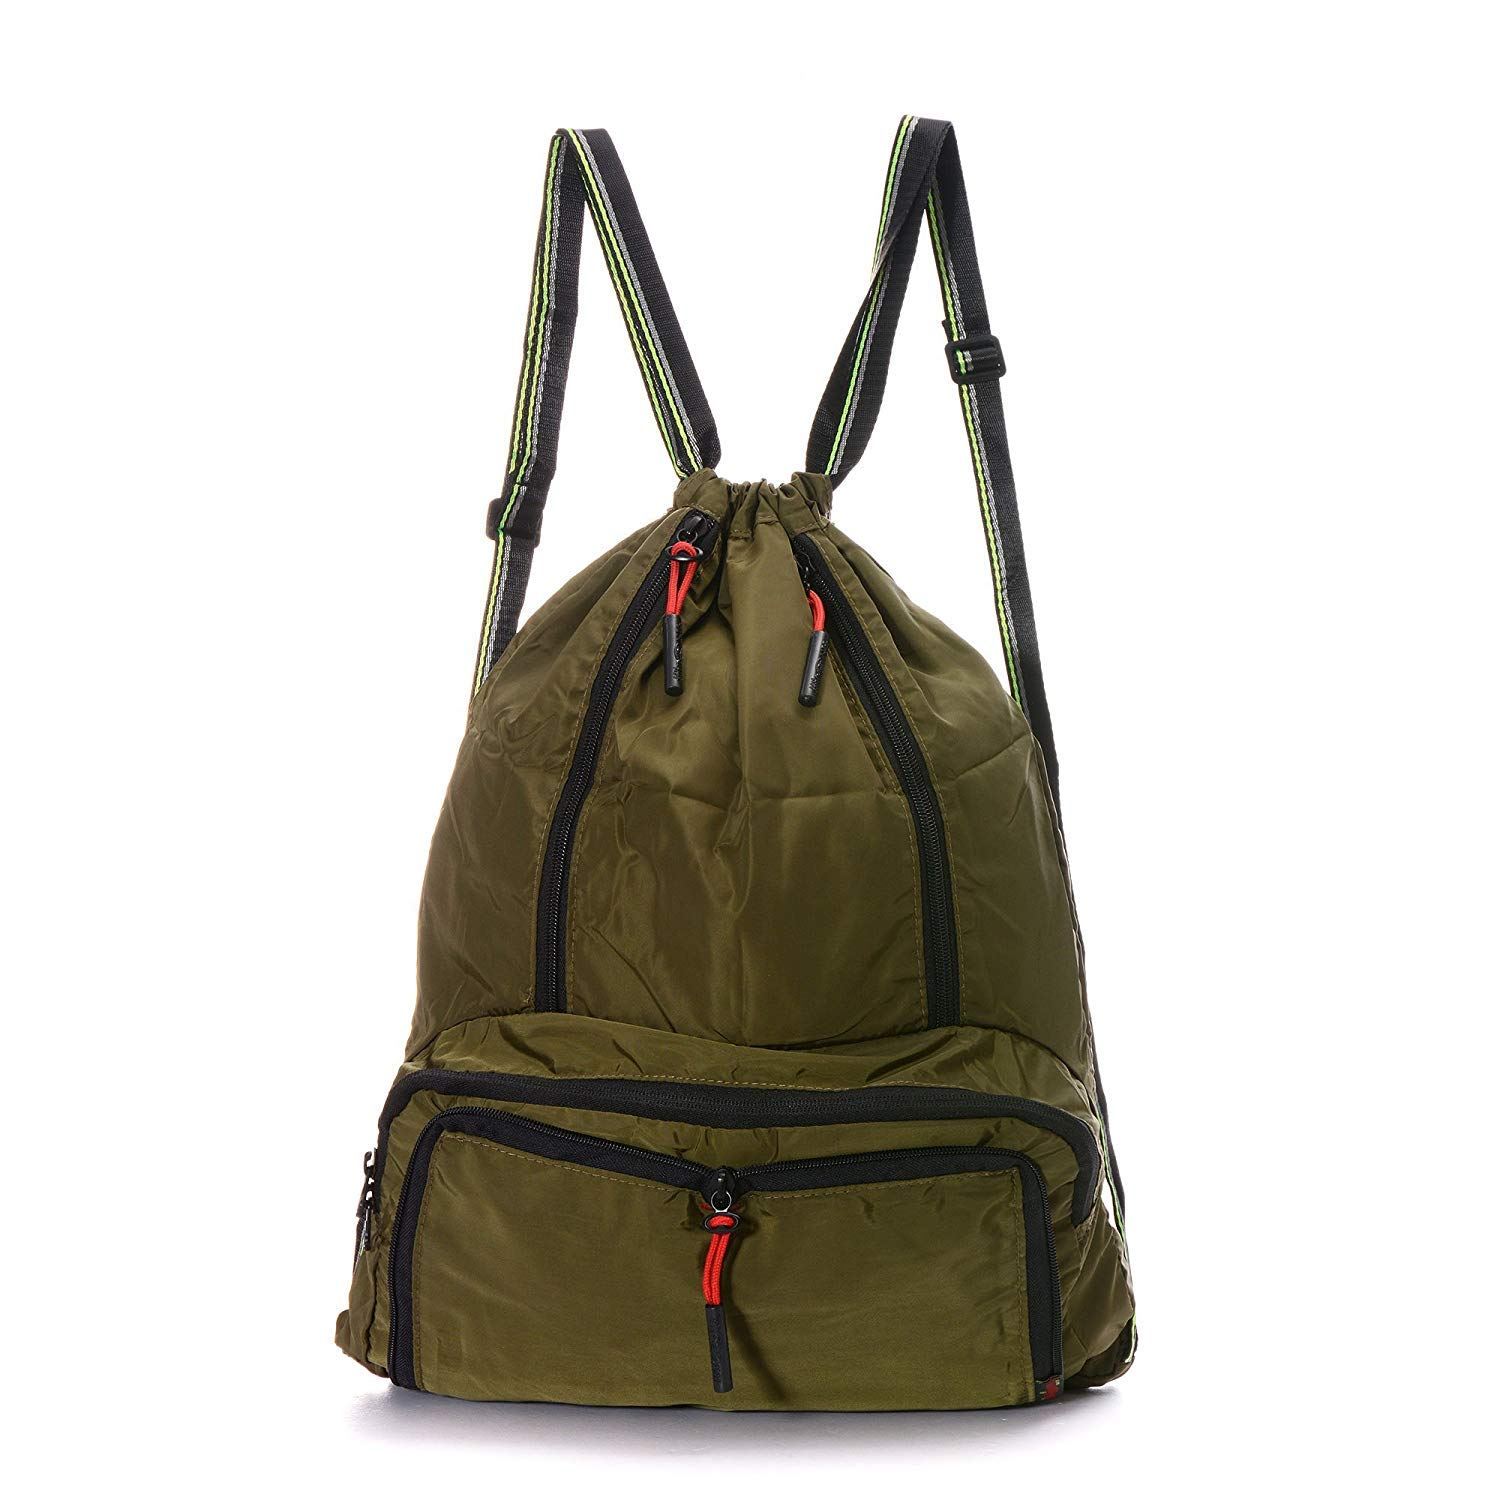 Amazon.com  DAYGOS Drawstring Backpack Lightweight Foldable Waterproof  Sports Gym Backpack Bag (Army Green)  Sports   Outdoors 3728098d1